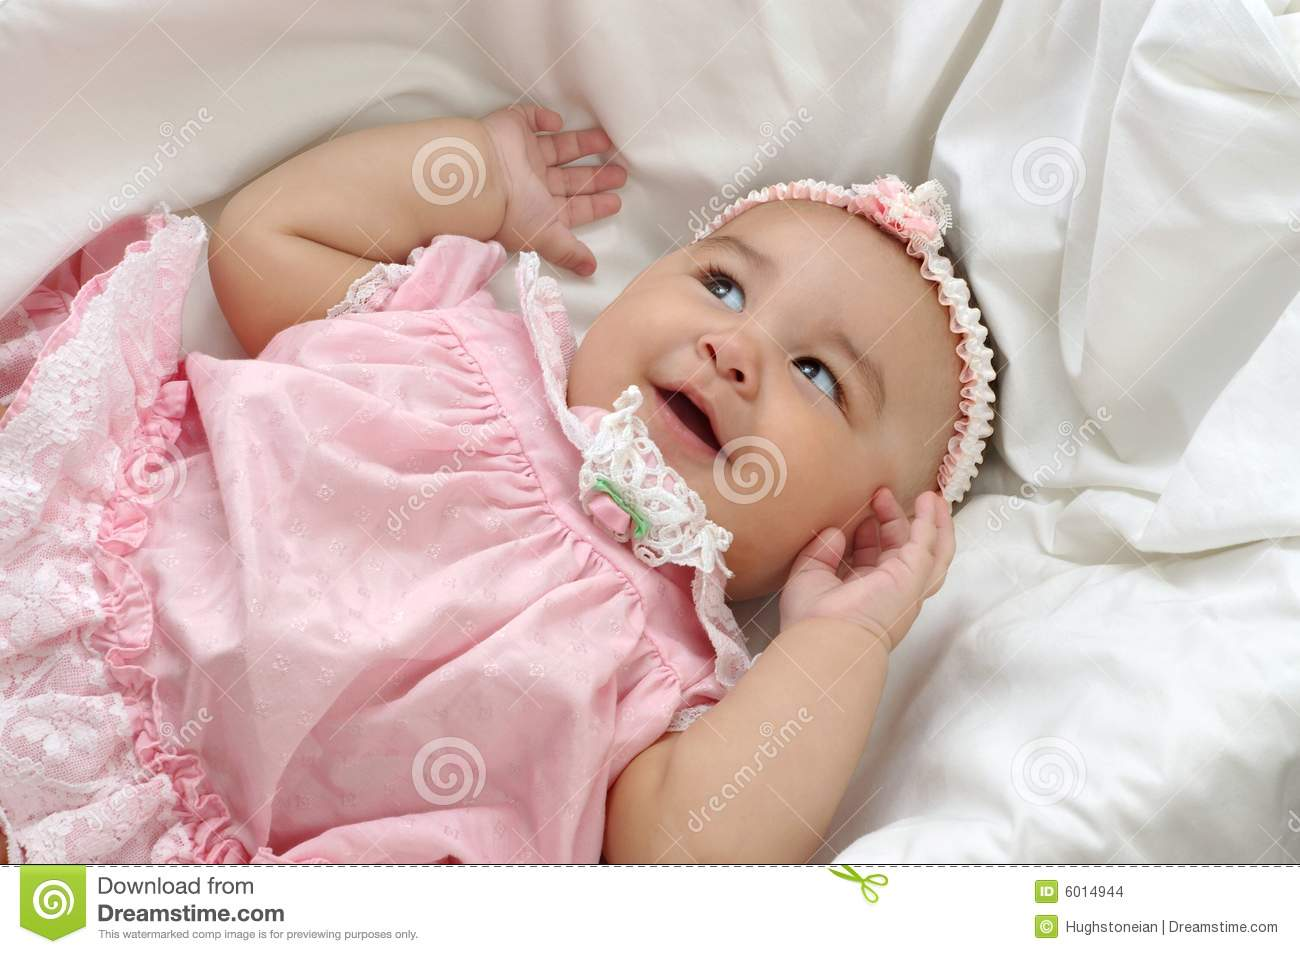 baby girl in pink 6 months stock photo. image of girl - 6014944